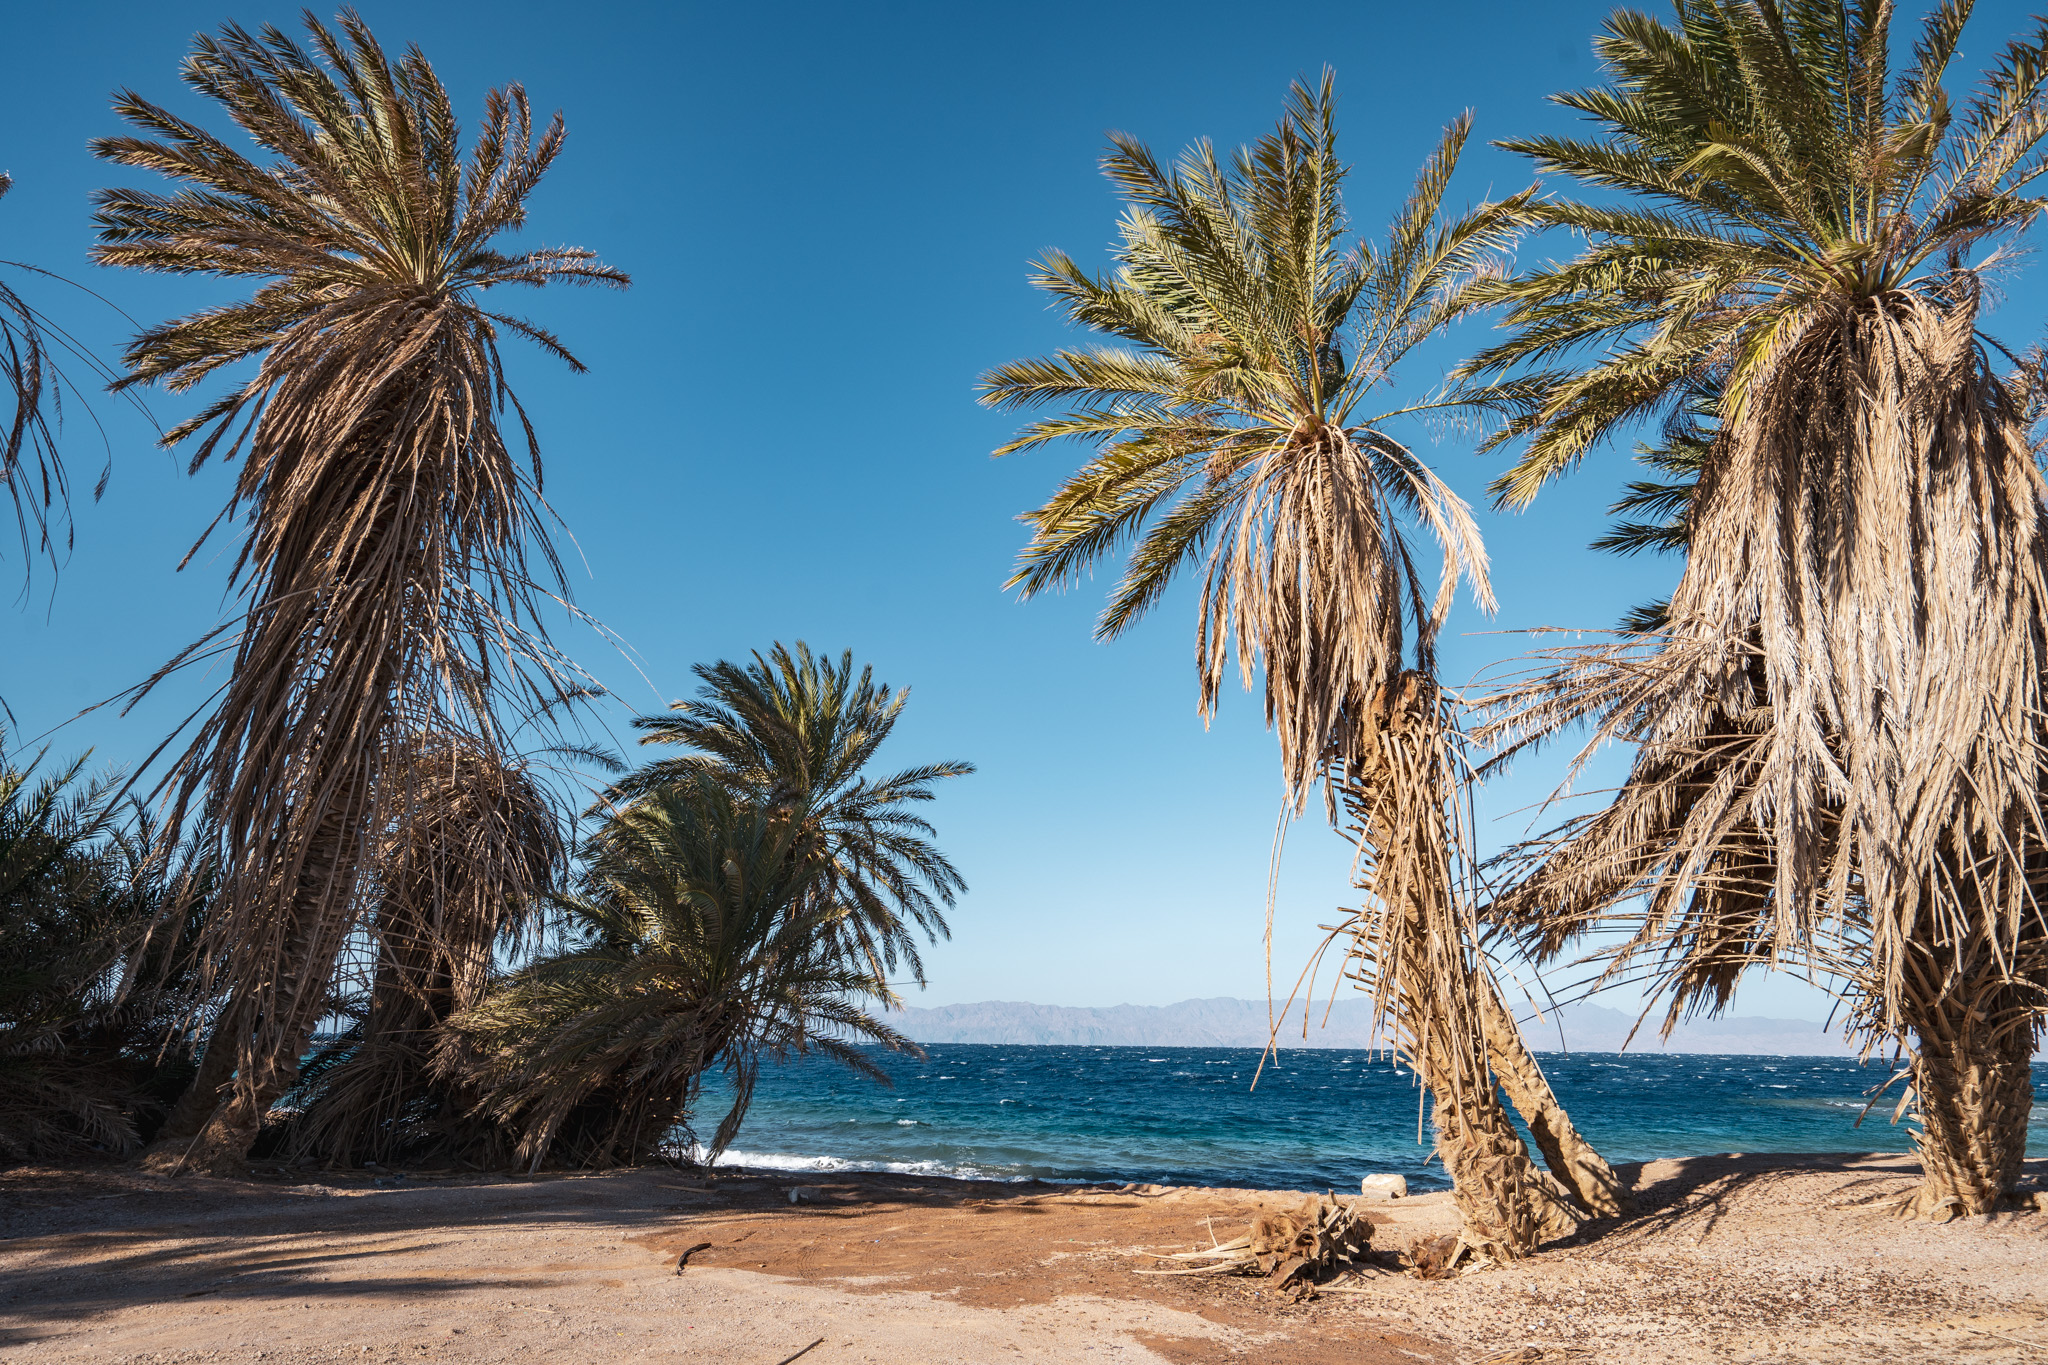 Secluded beach on the Gulf of Aqaba